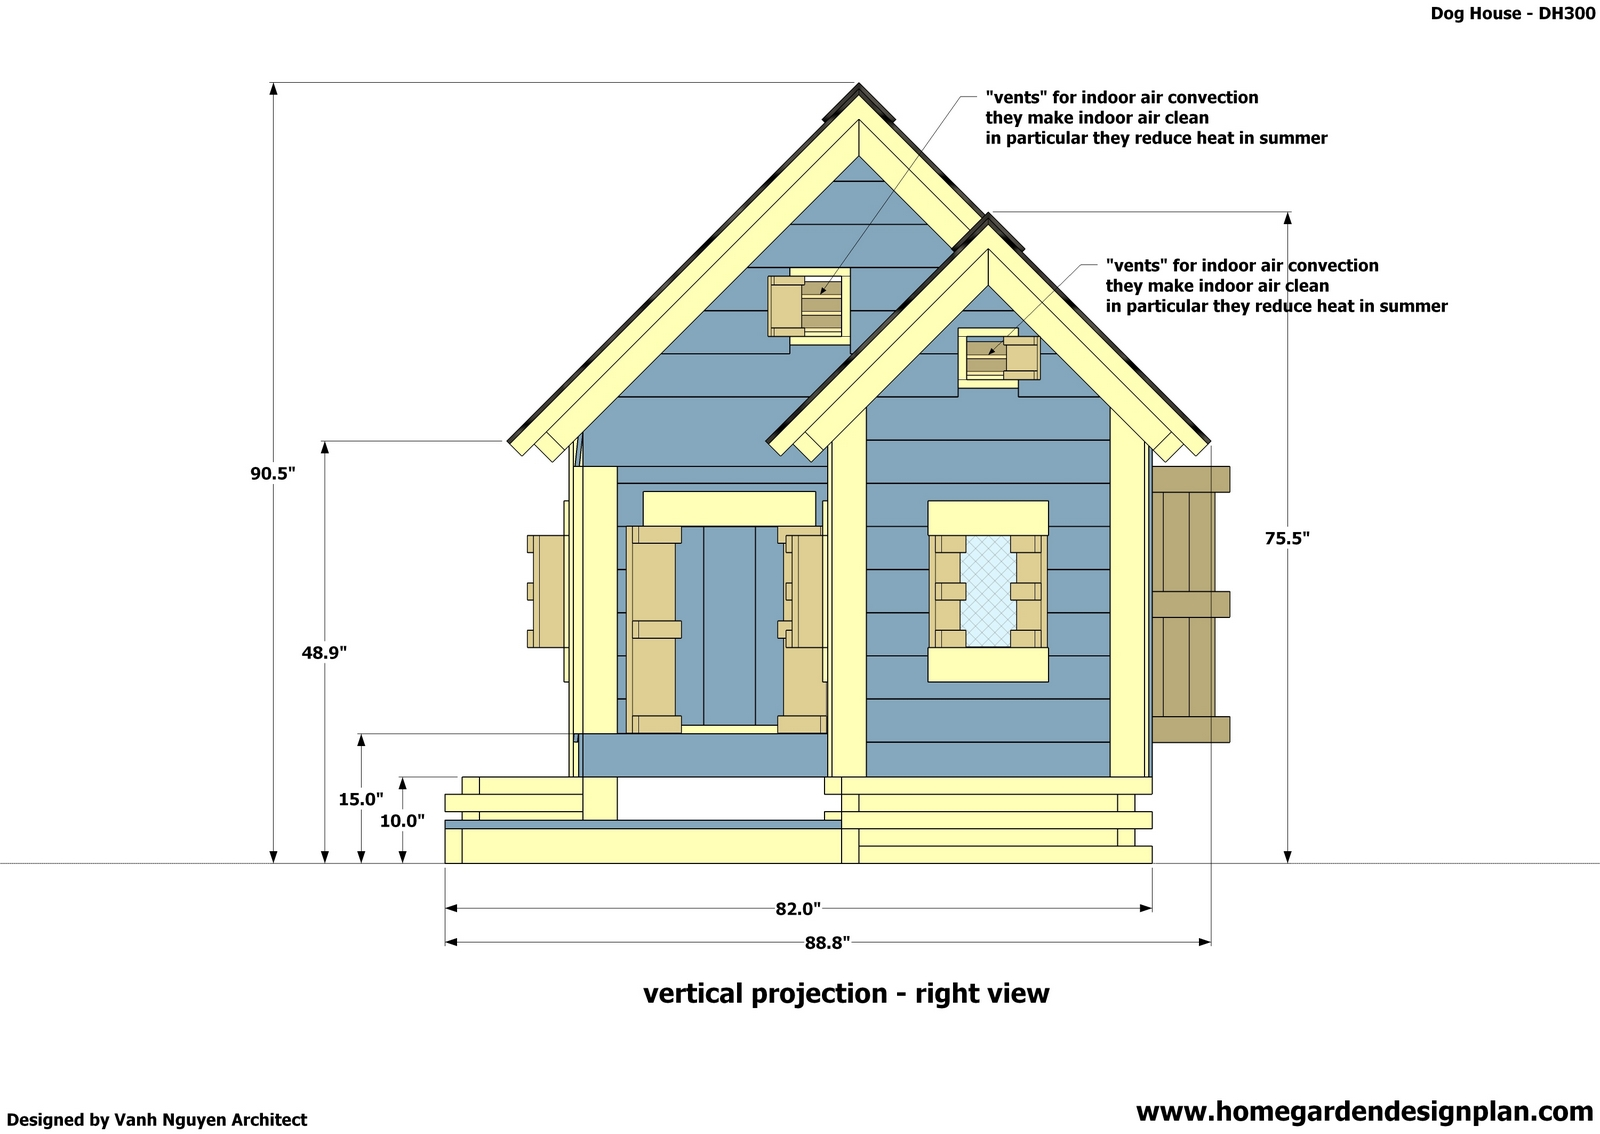 Home garden plans dh300 dog house plans free how to for Free home floor plans